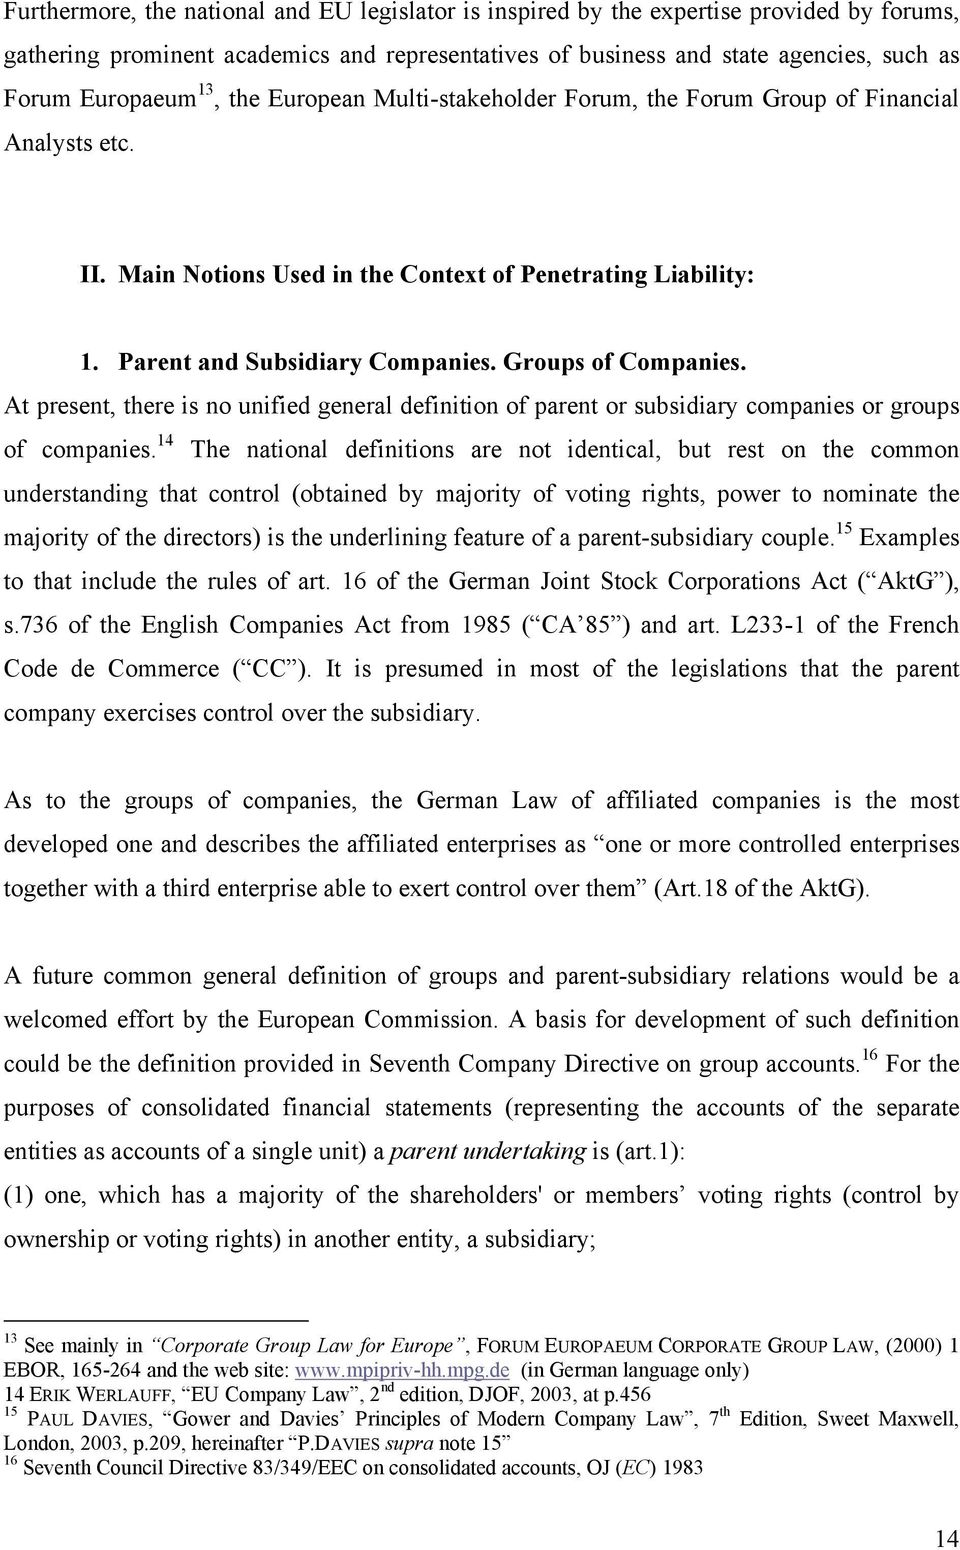 Groups of Companies. At present, there is no unified general definition of parent or subsidiary companies or groups of companies.